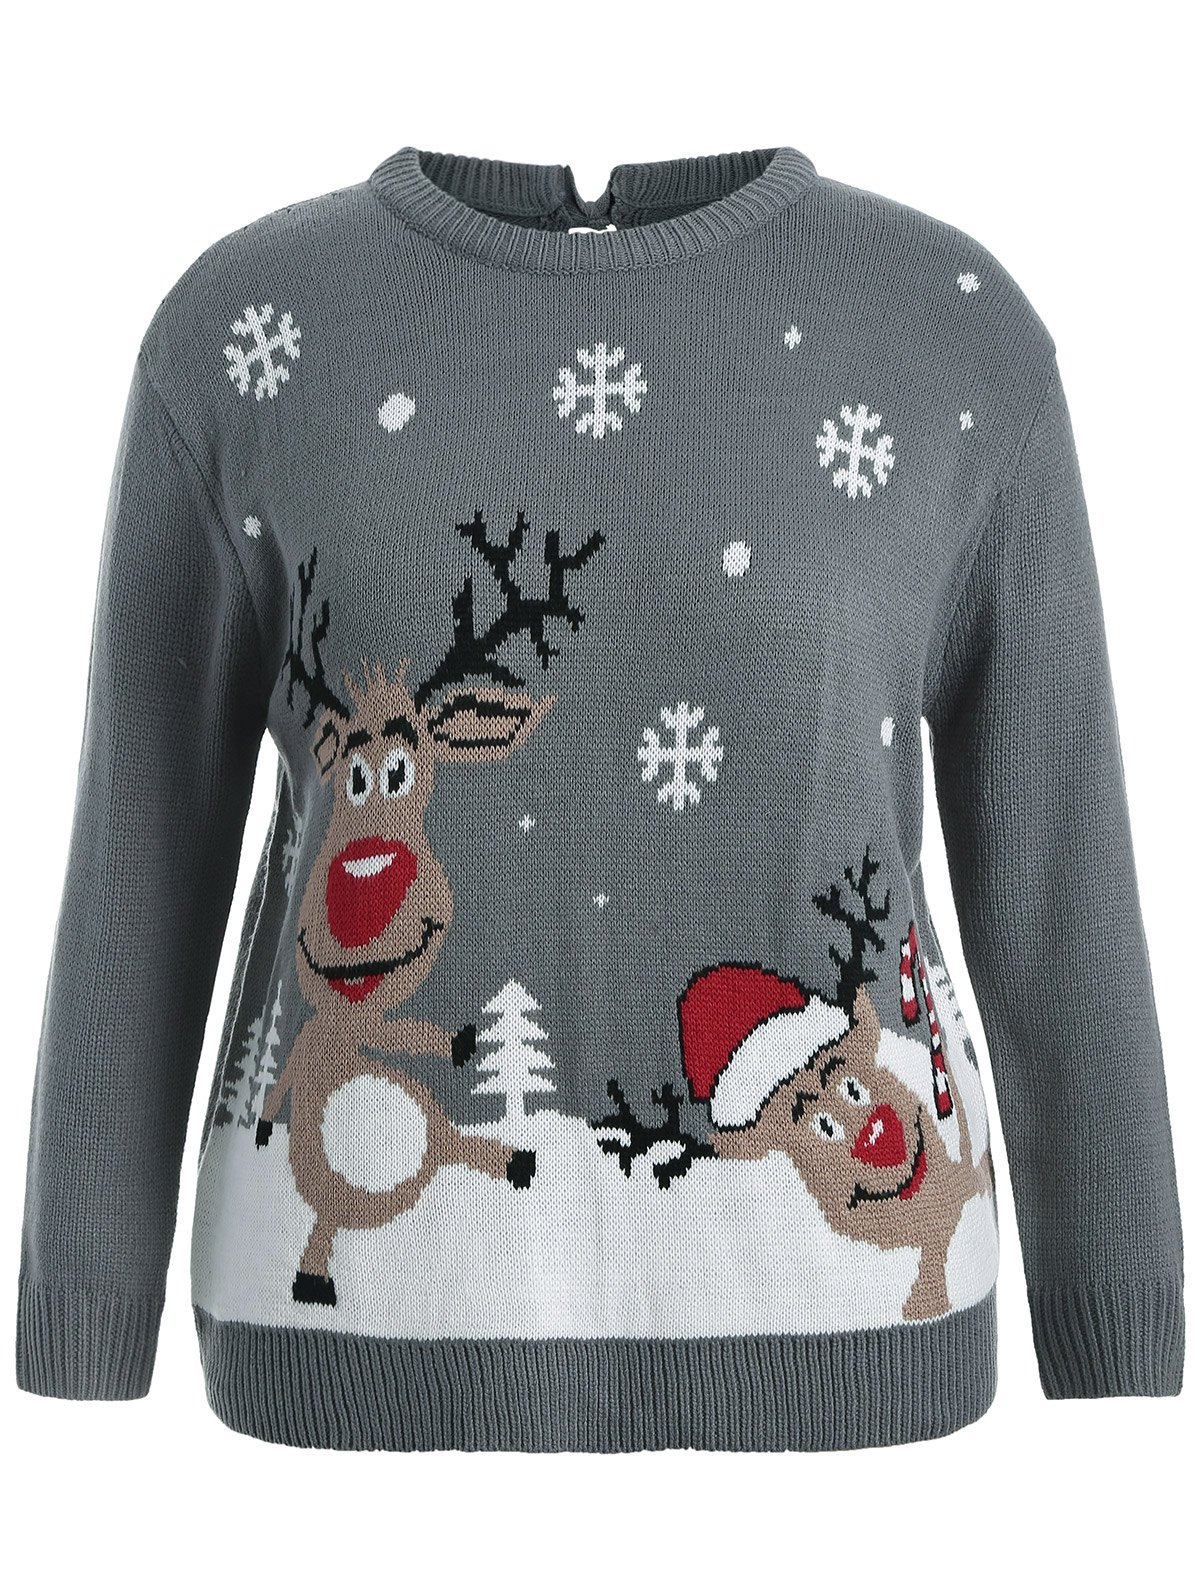 Back Bowknot Snowflake Cartoon Pattern Christmas SweaterWOMEN<br><br>Size: 3XL; Color: GRAY; Type: Pullovers; Material: Cotton,Spandex; Sleeve Length: Full; Collar: Round Neck; Technics: Computer Knitted; Style: Novelty; Season: Fall,Spring,Winter; Pattern Type: Character; Weight: 0.450kg; Package Contents: 1 x Sweater;